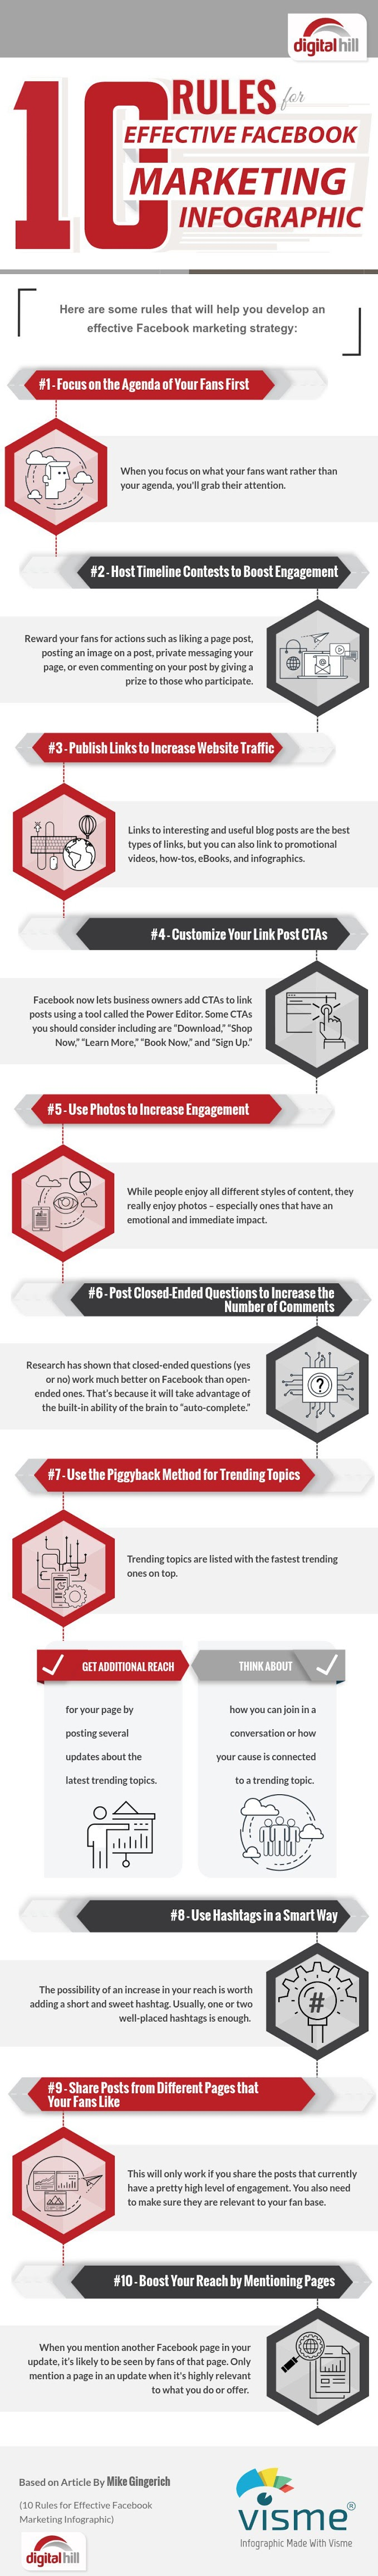 Facebook Marketing rules to follow for better results